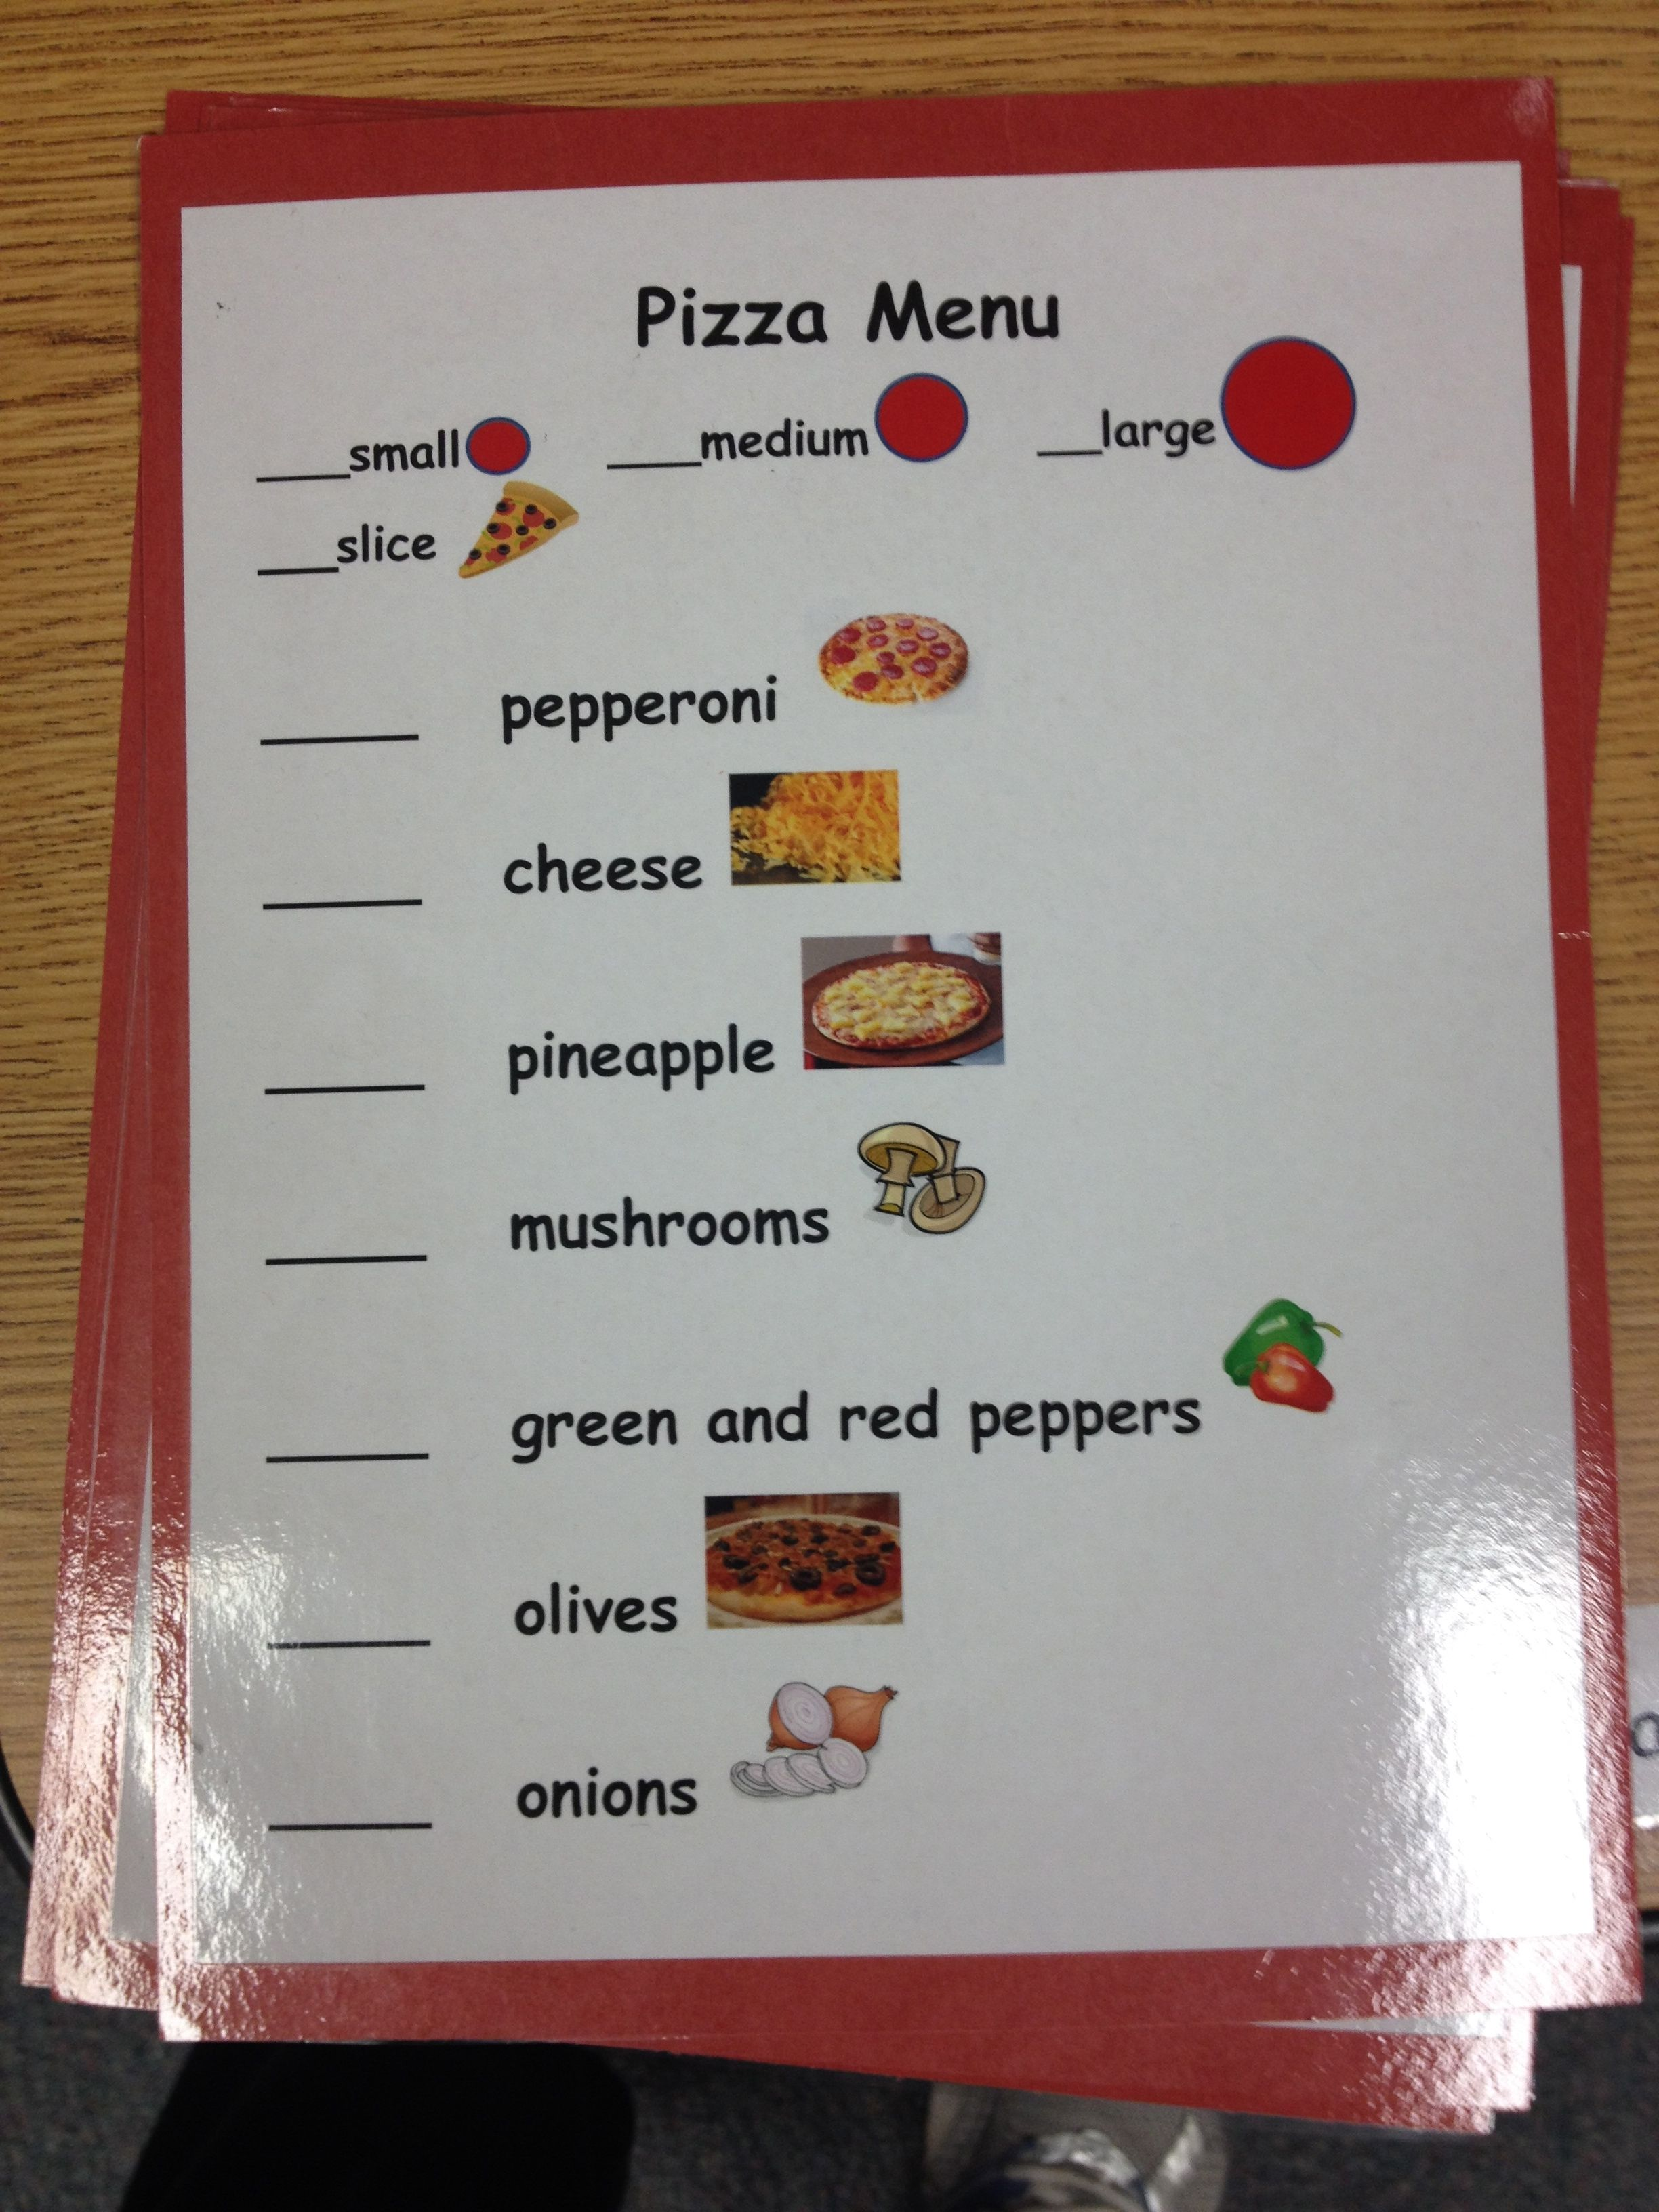 Here Is The Menu I Created For Ordering Their Pizza  I Laminated The Sheet So They Can Use A Dry